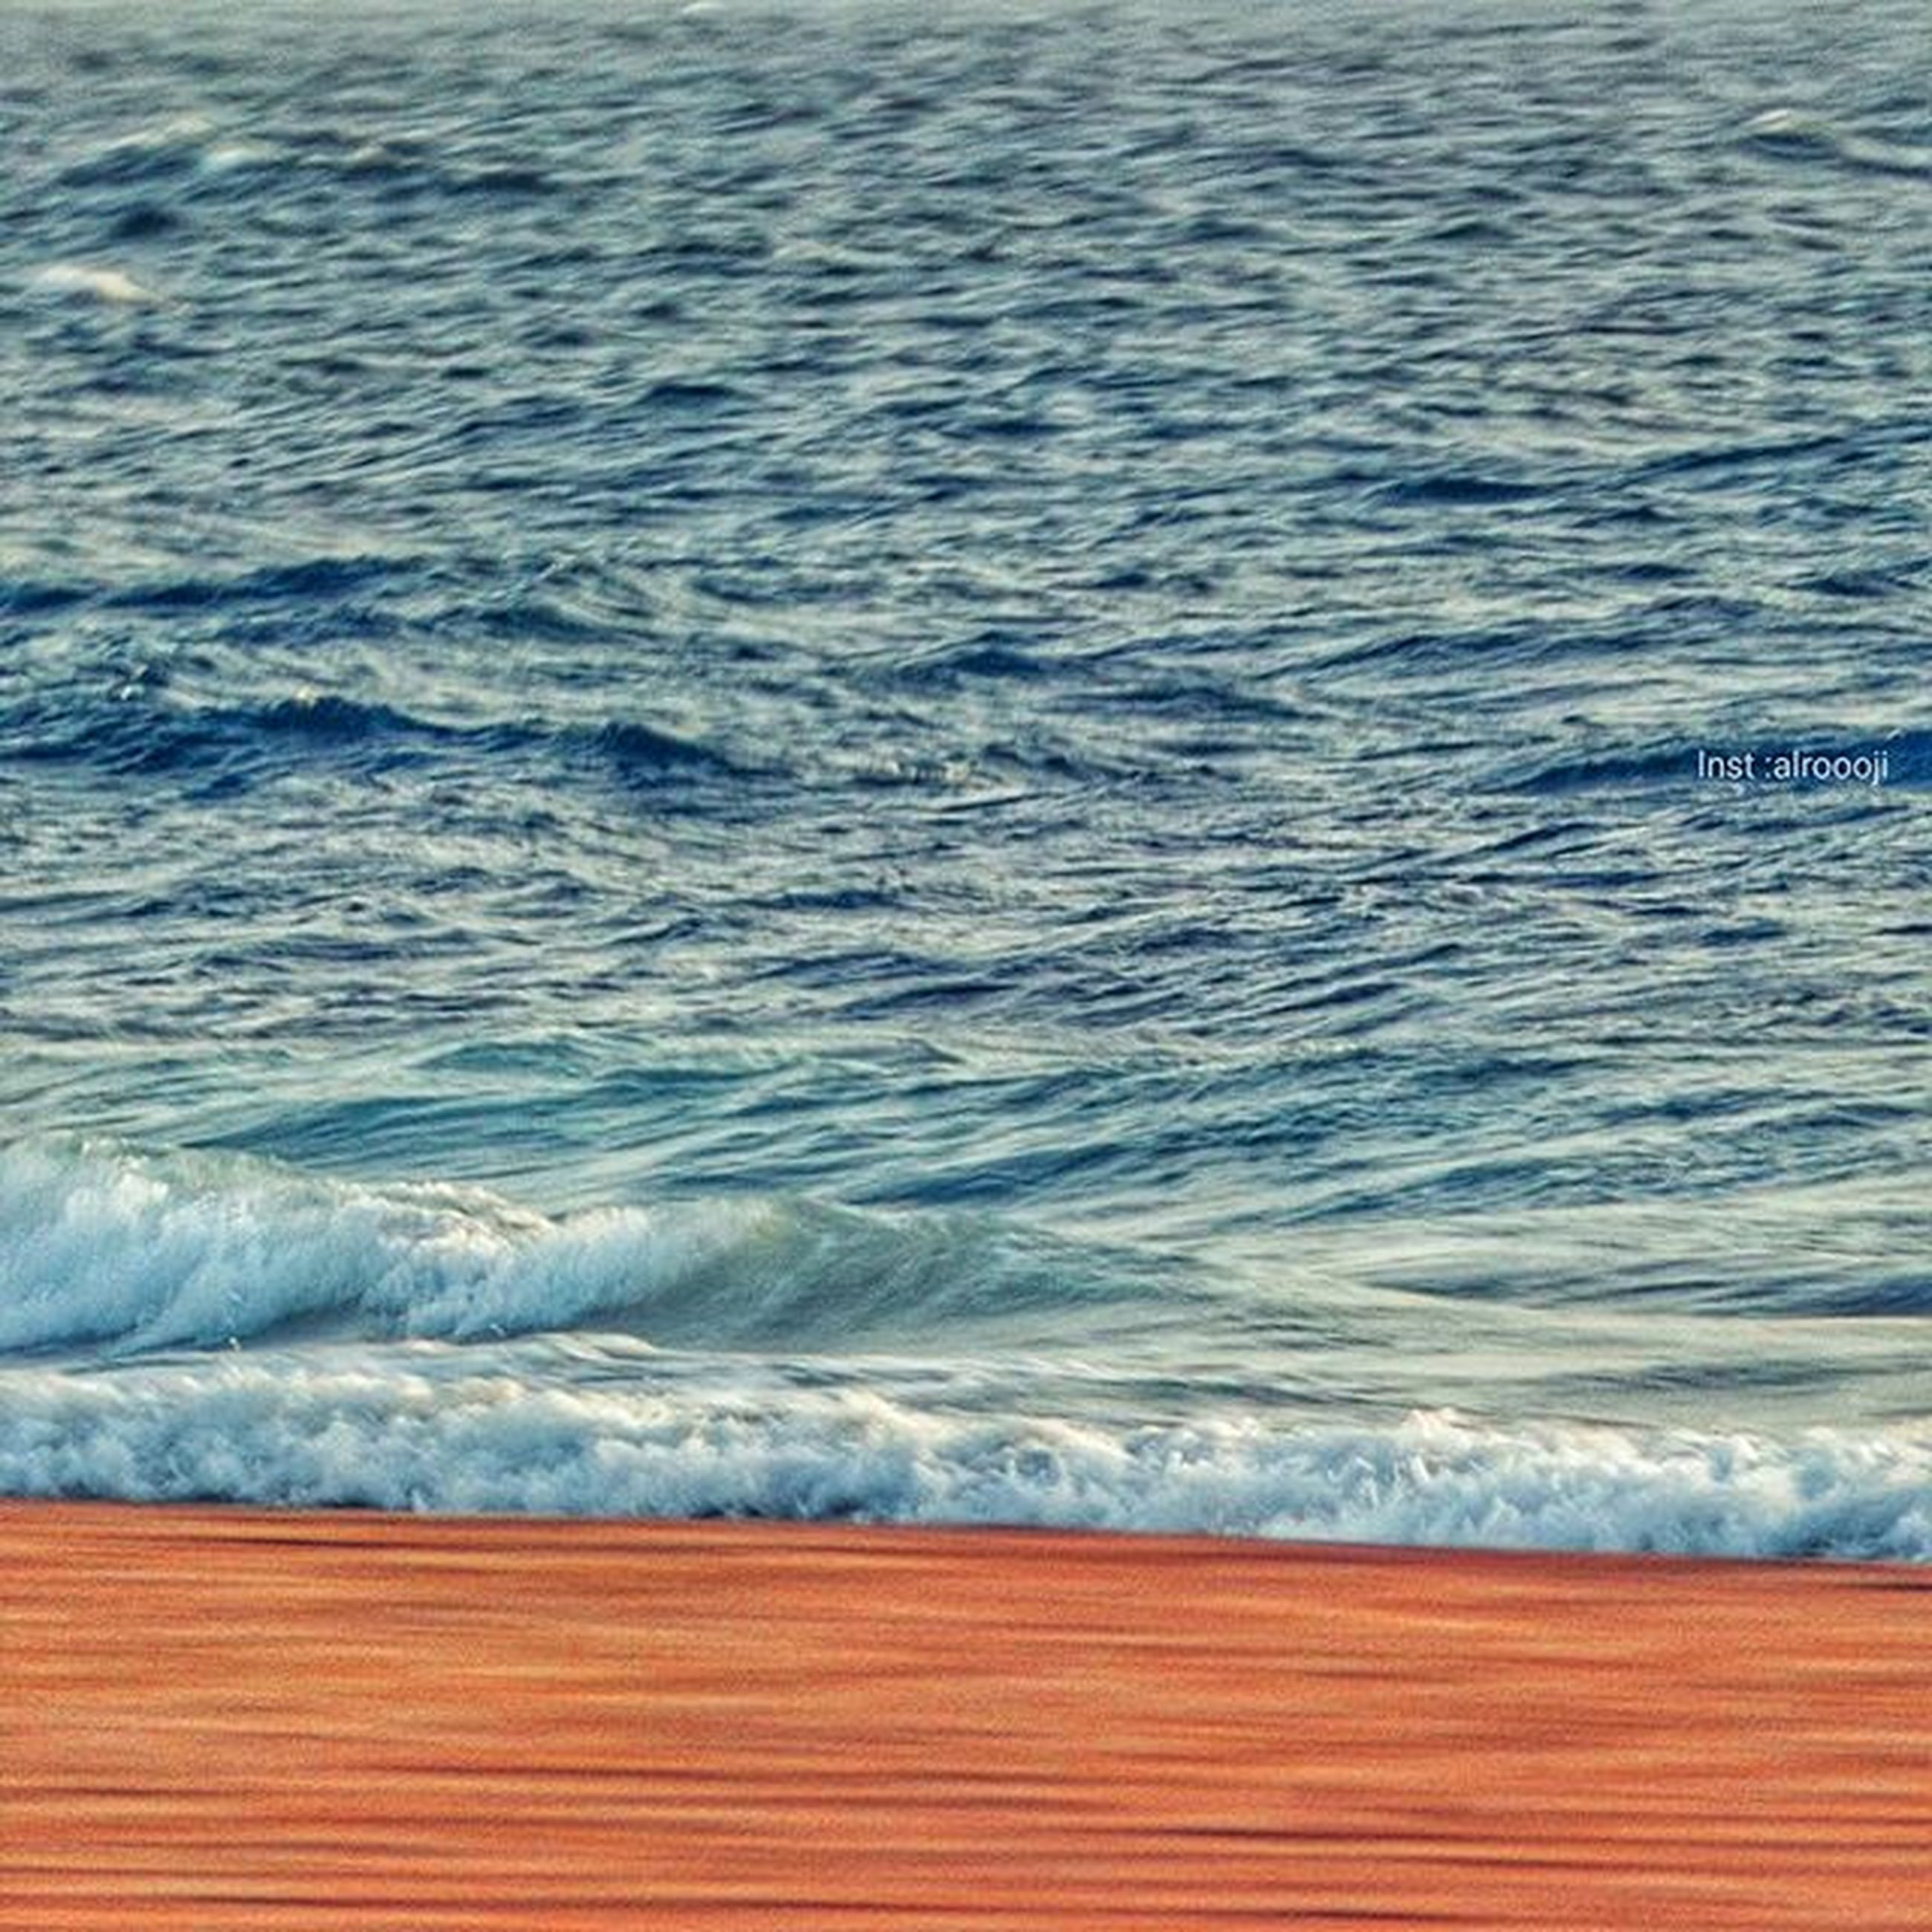 water, sea, wave, surf, wood - material, rippled, nature, pier, beauty in nature, beach, scenics, motion, tranquility, shore, high angle view, tranquil scene, day, outdoors, no people, seascape